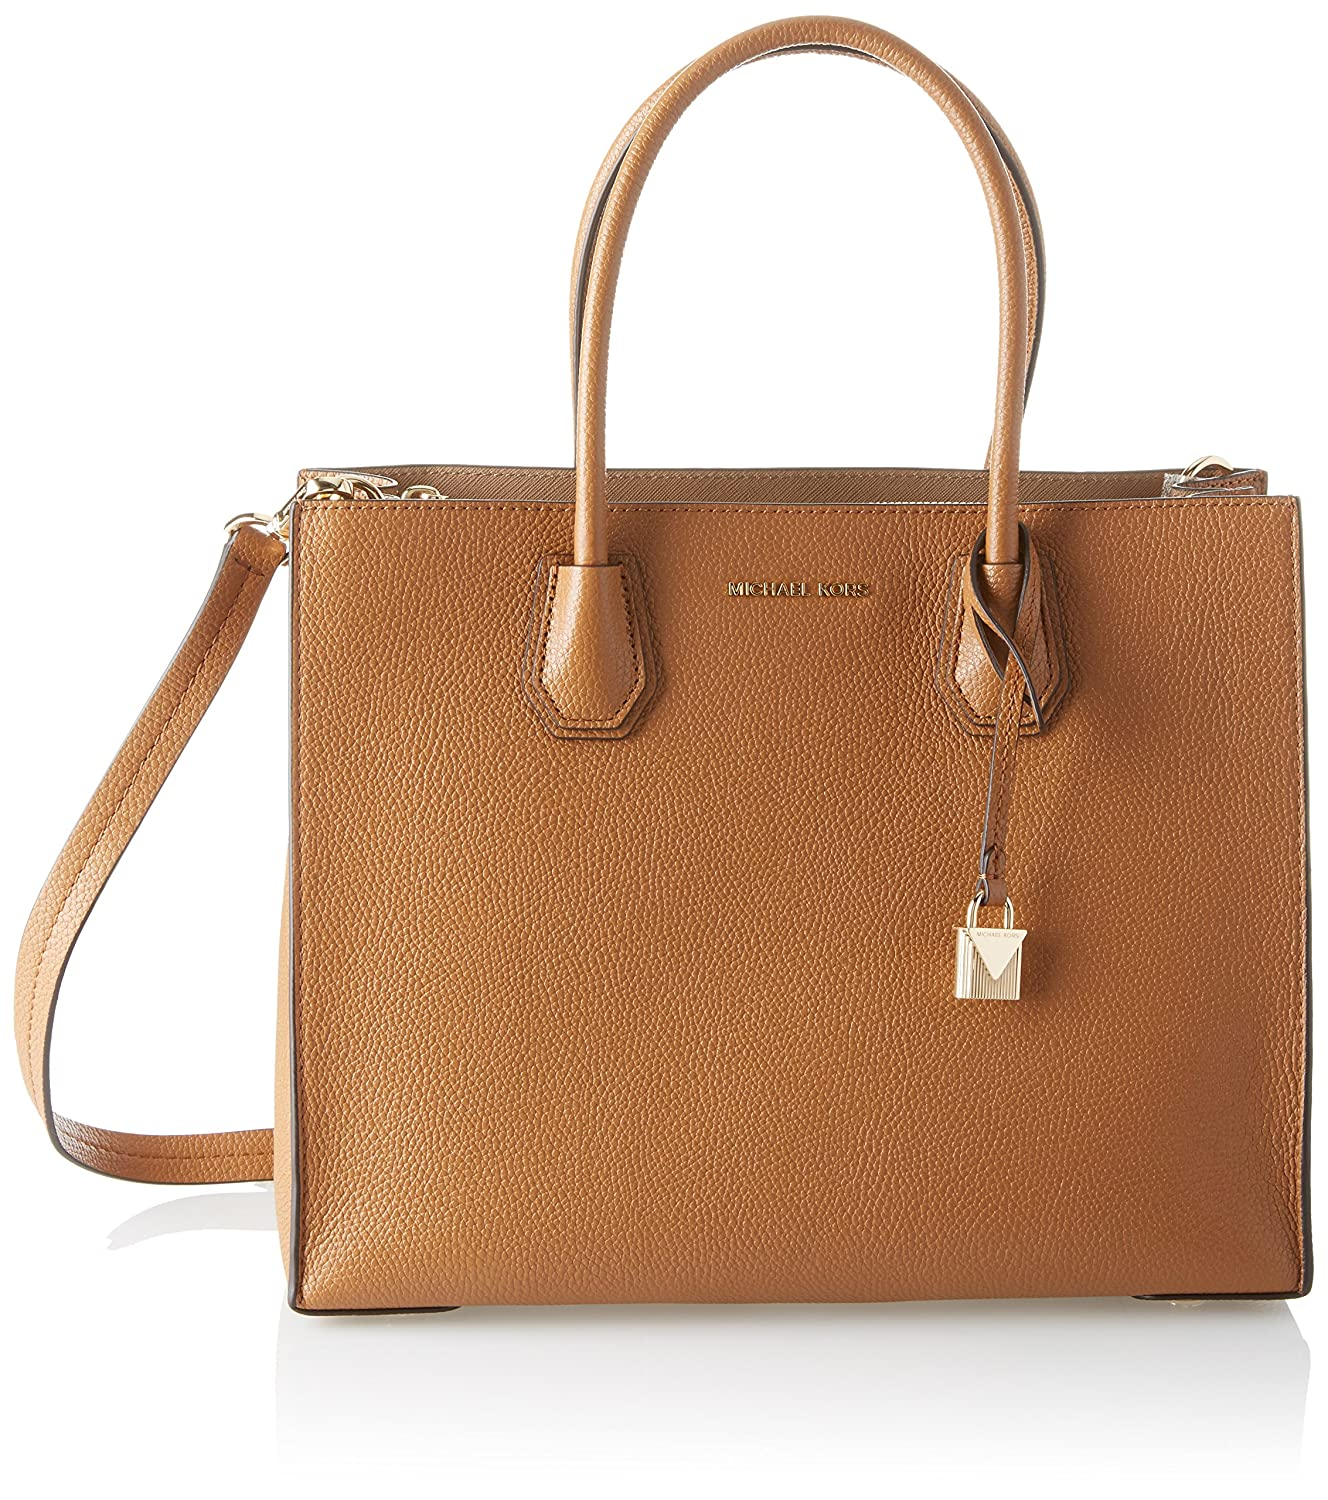 fd7fca8b0045 Amazon.com  Michael Kors Womens Mercer Tote